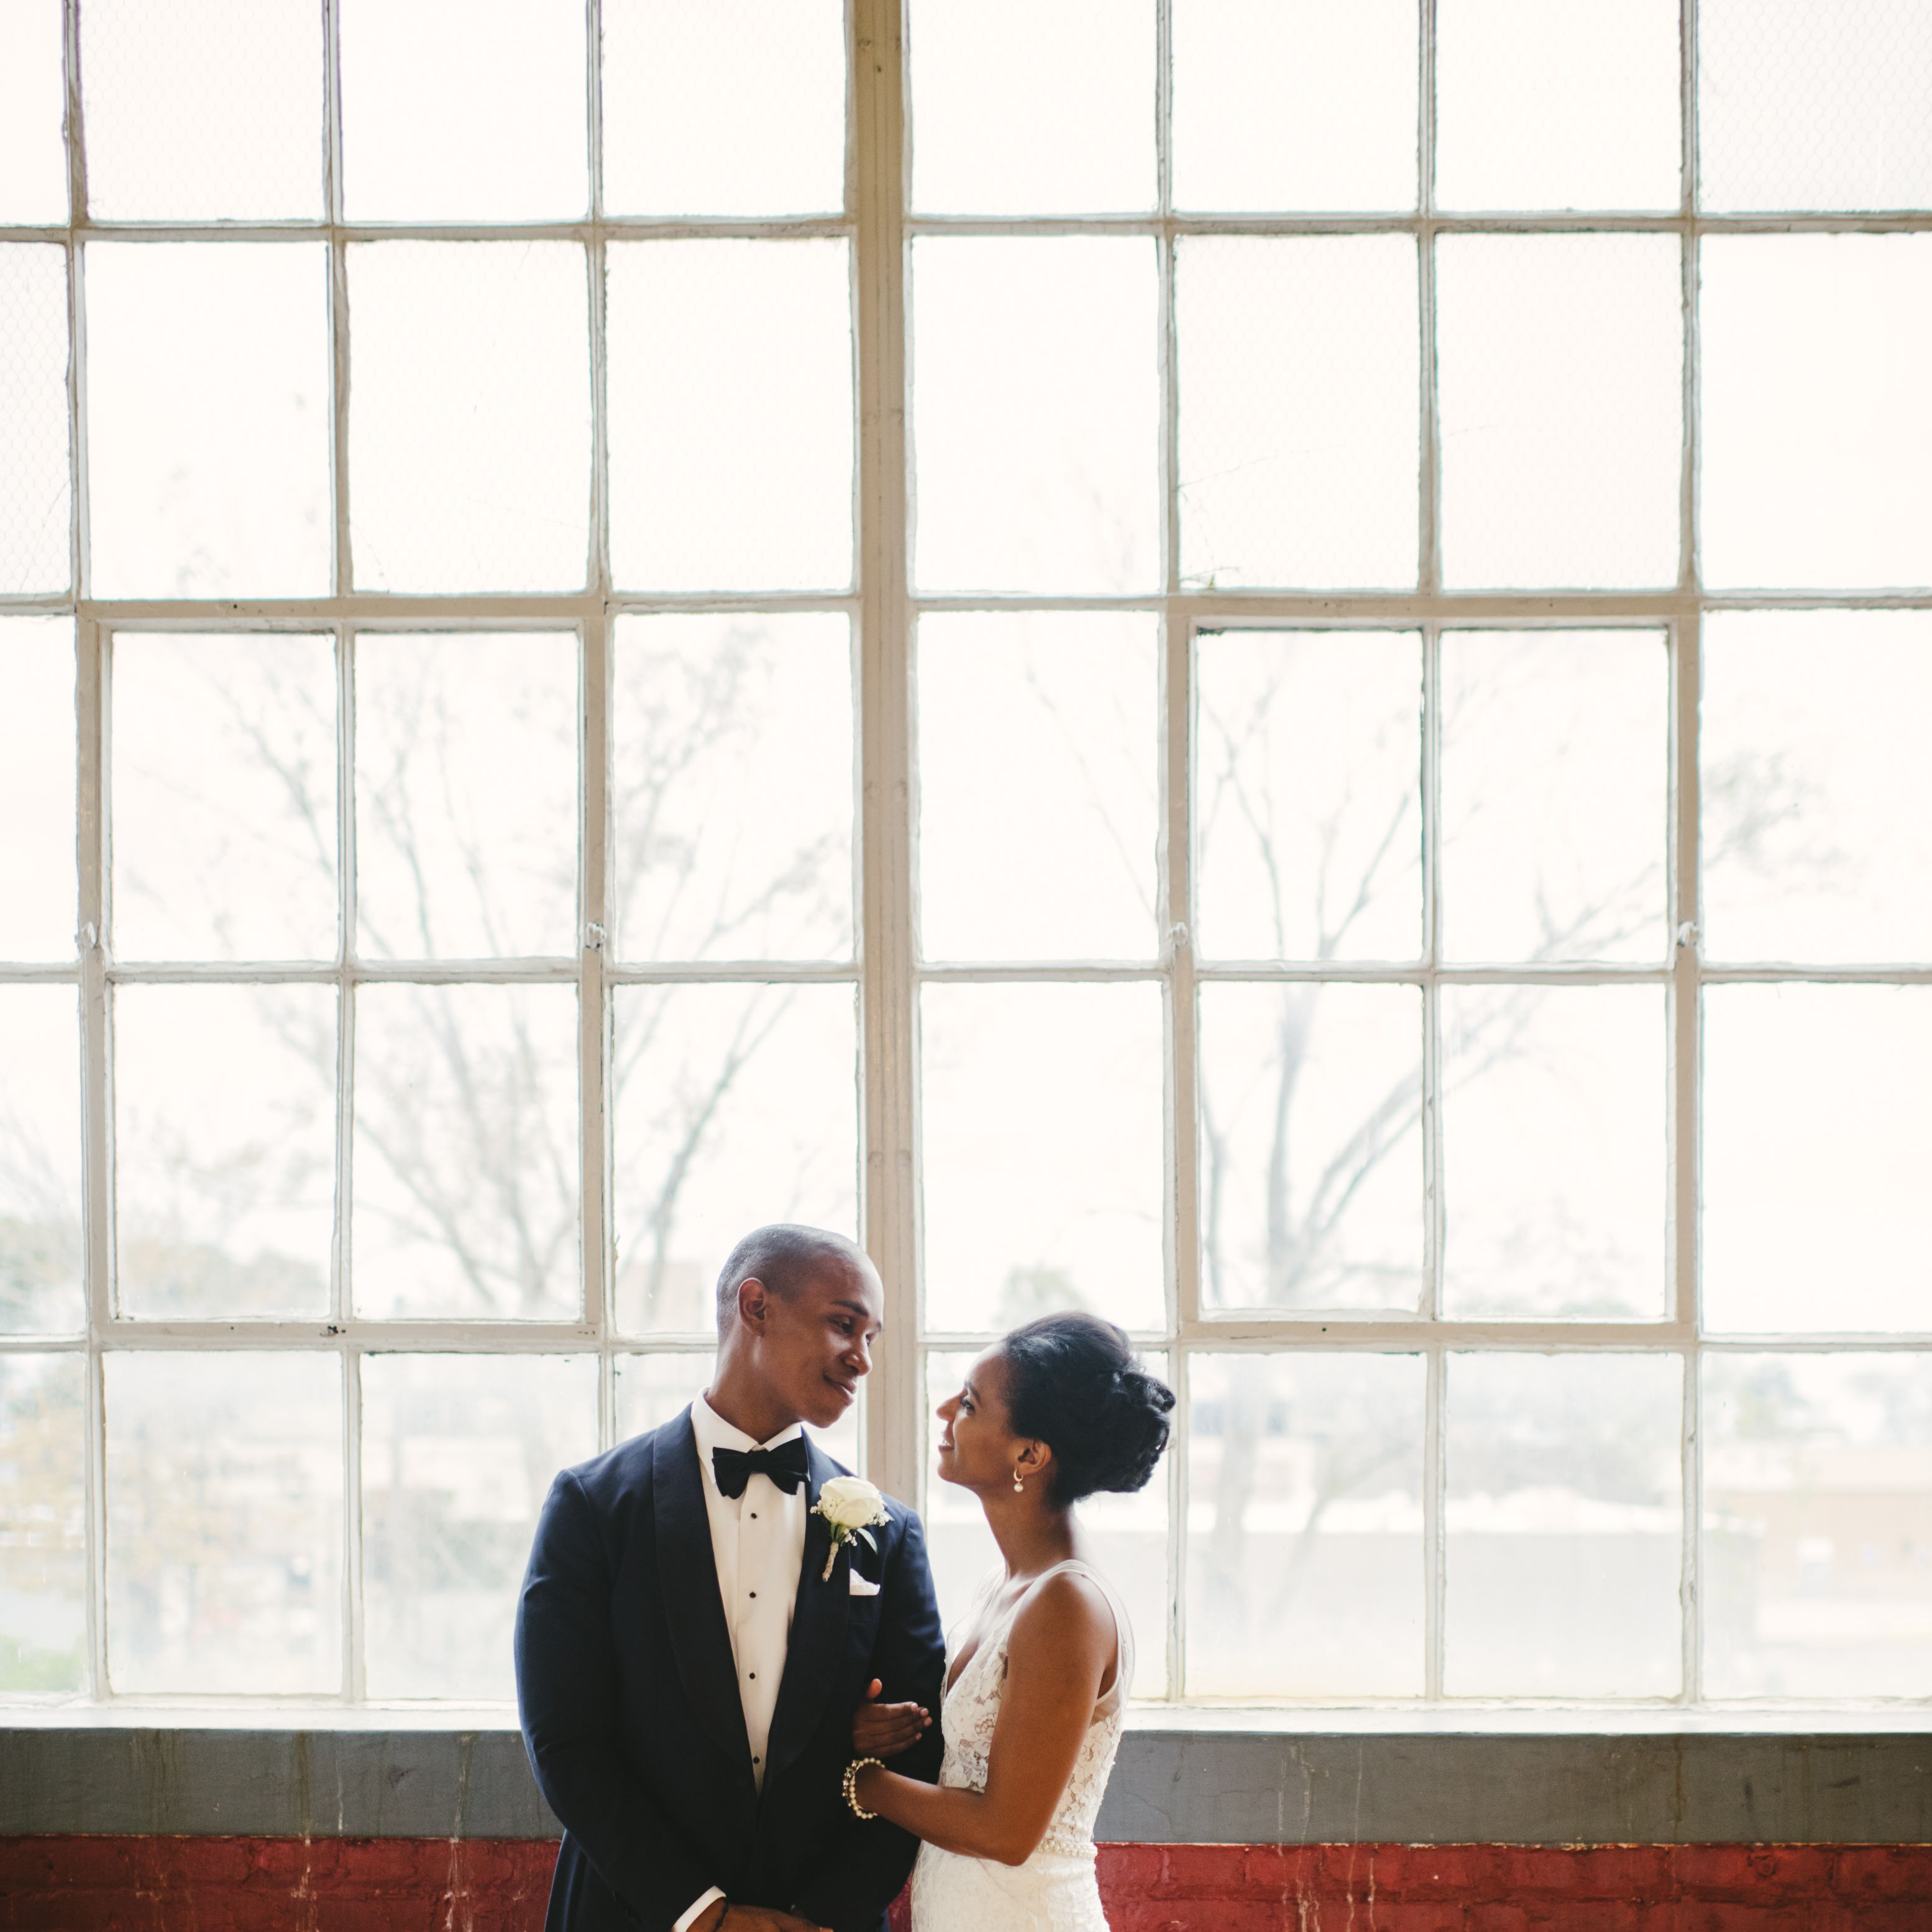 A Romantic Wedding at a Cleveland Art Gallery